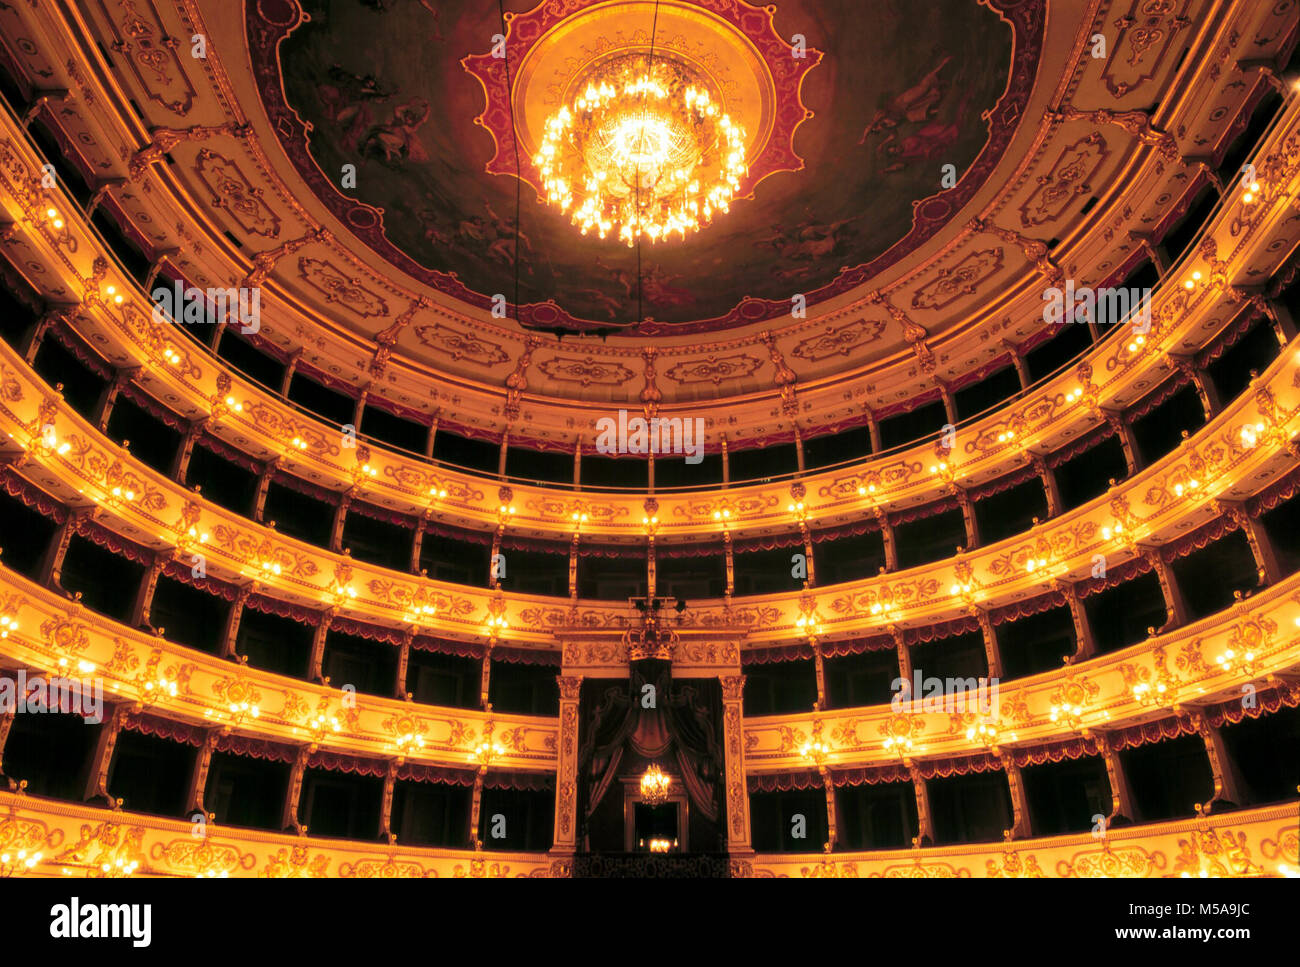 Parma (Italy), the Royal theater - Stock Image